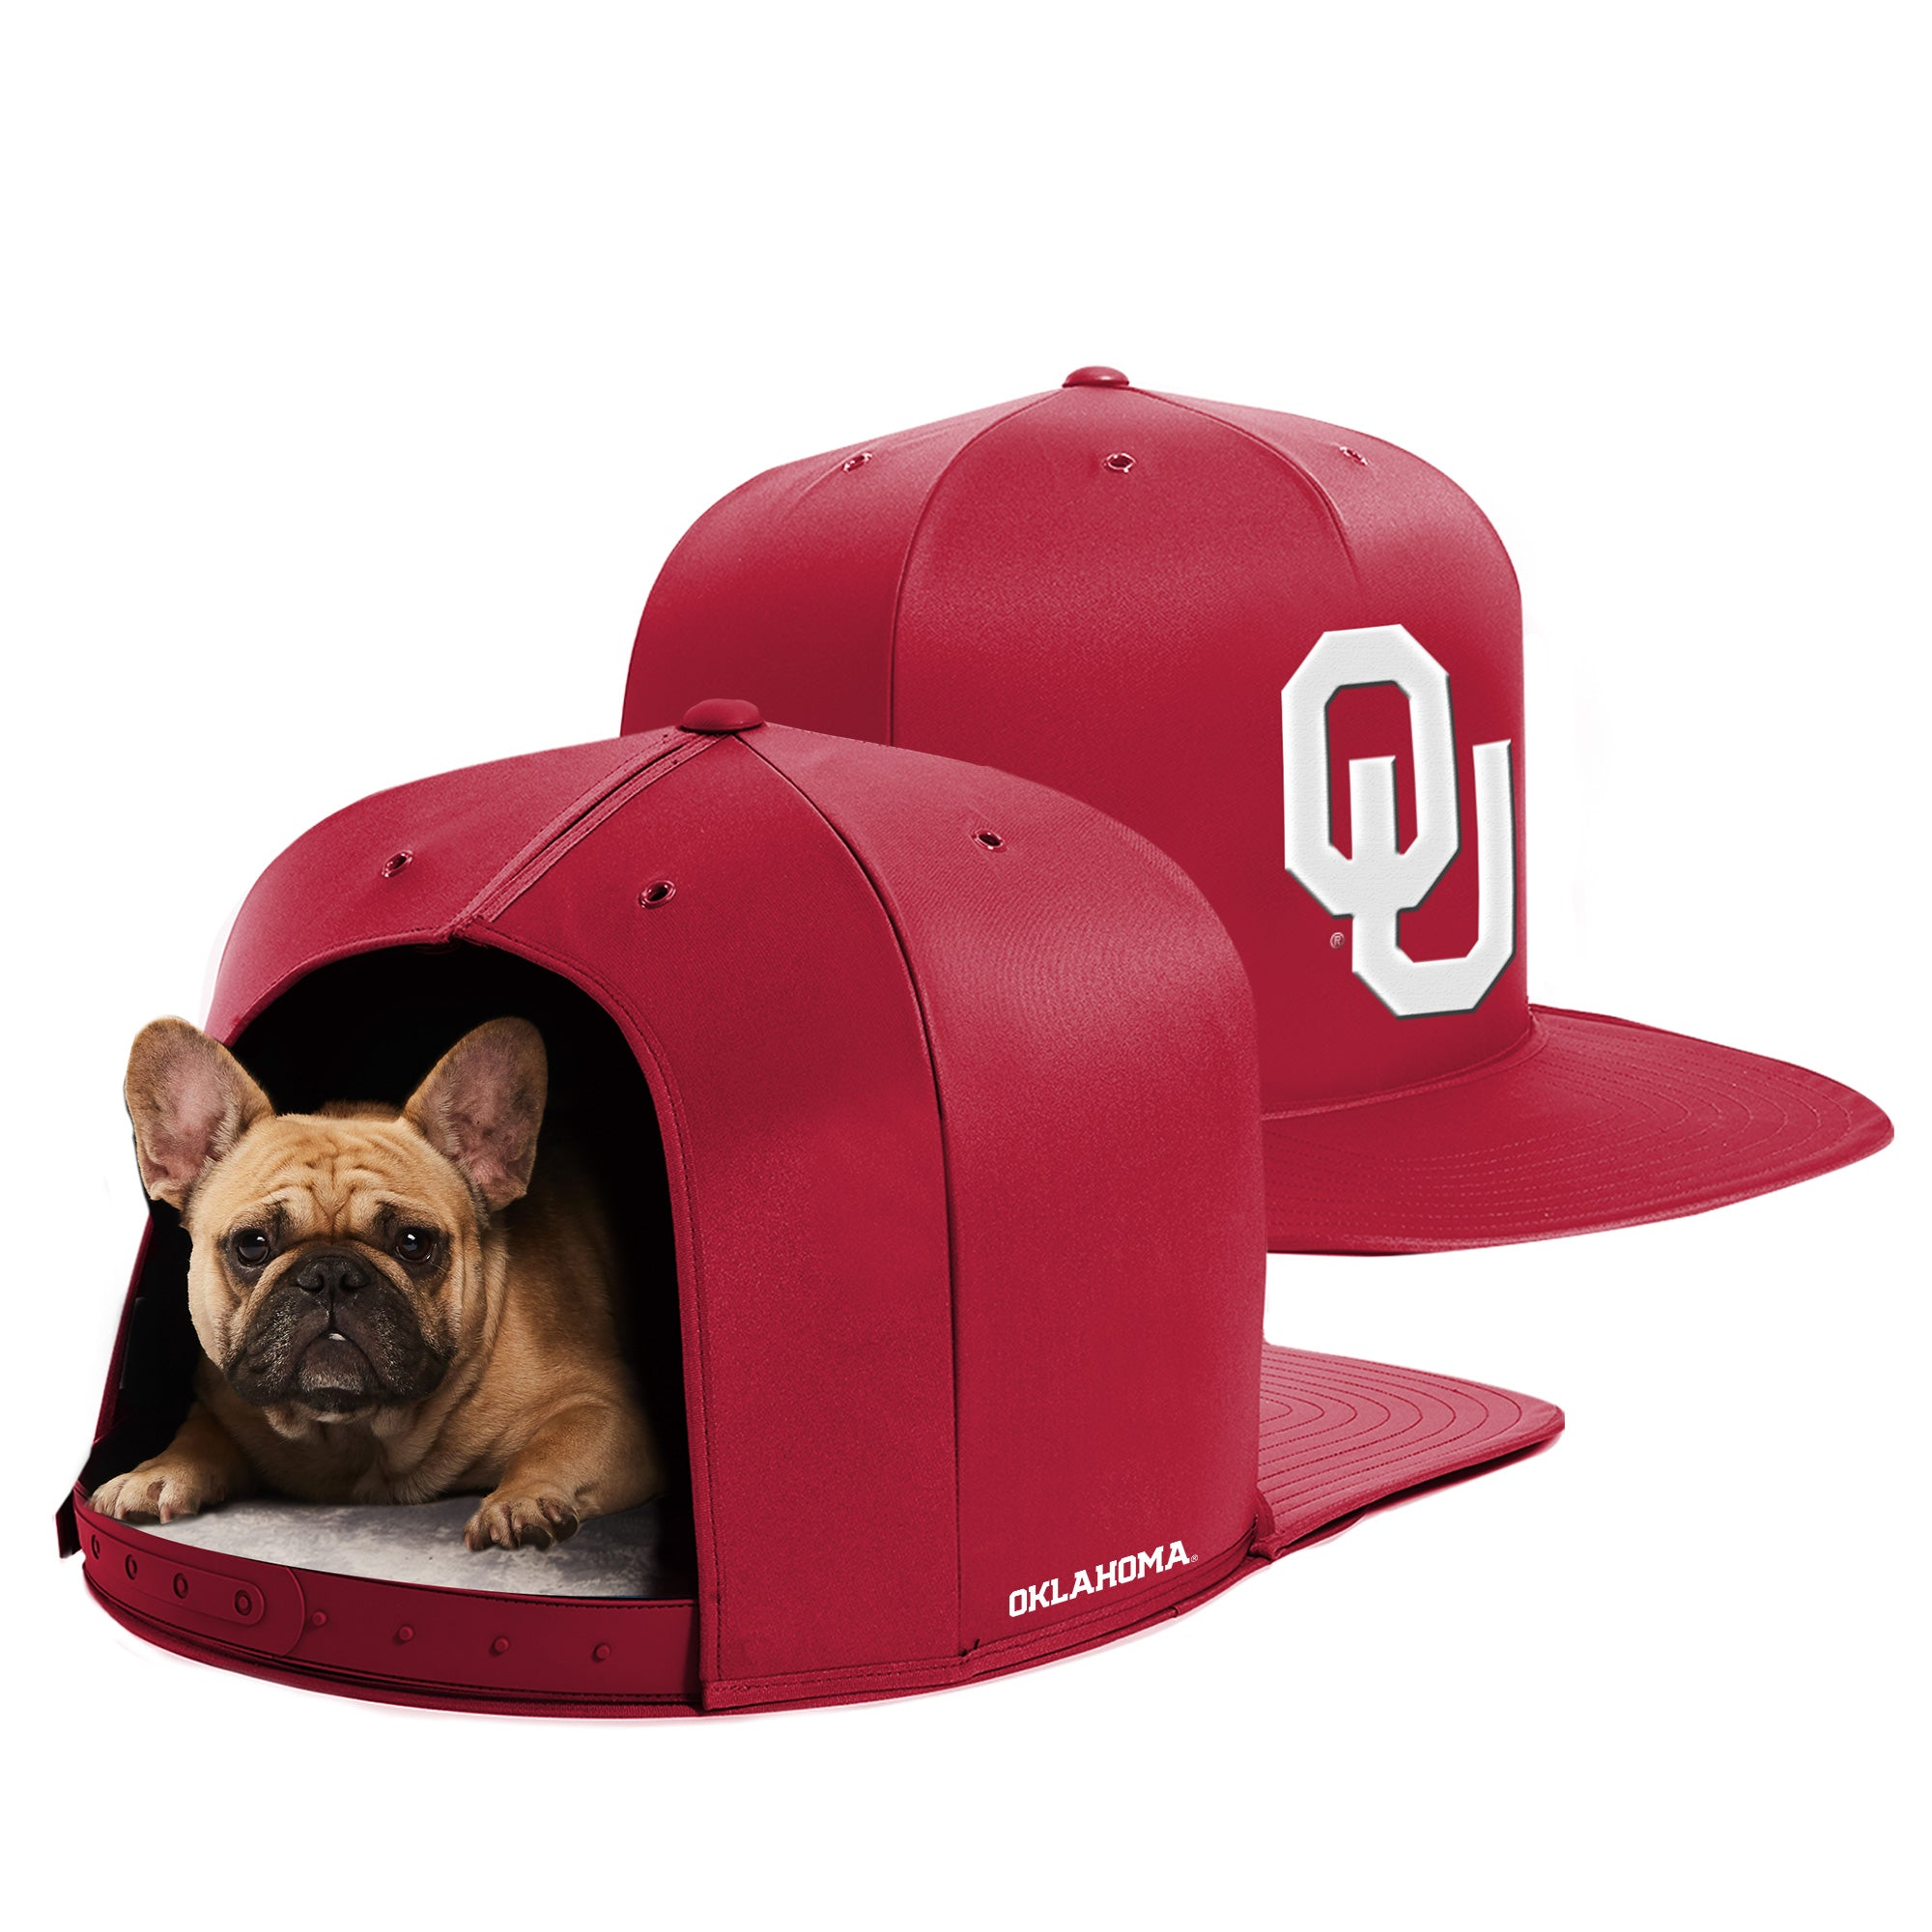 Nap Cap - University of Oklahoma - Pet Bed